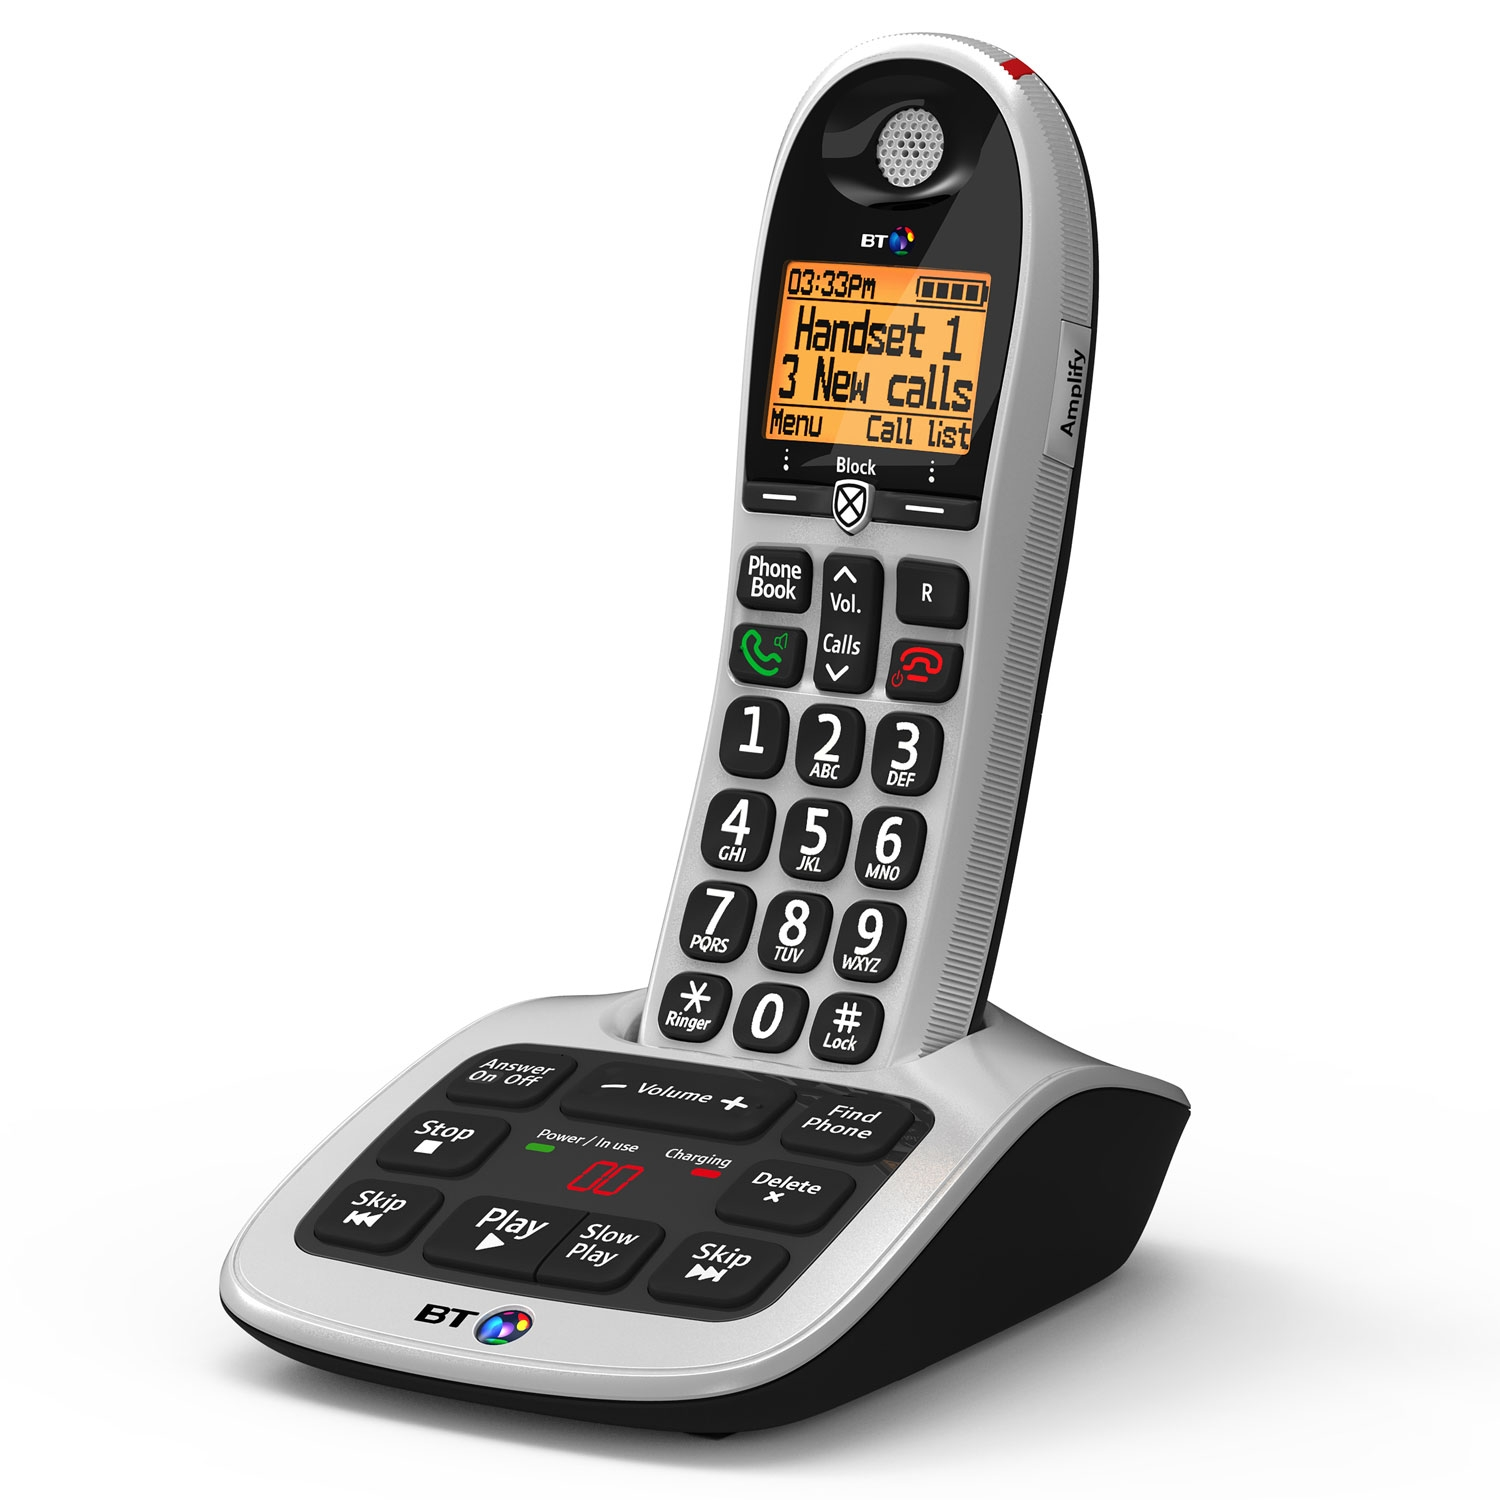 Image of BT 4600 Cordless Phone, Single Handset with Big Buttons